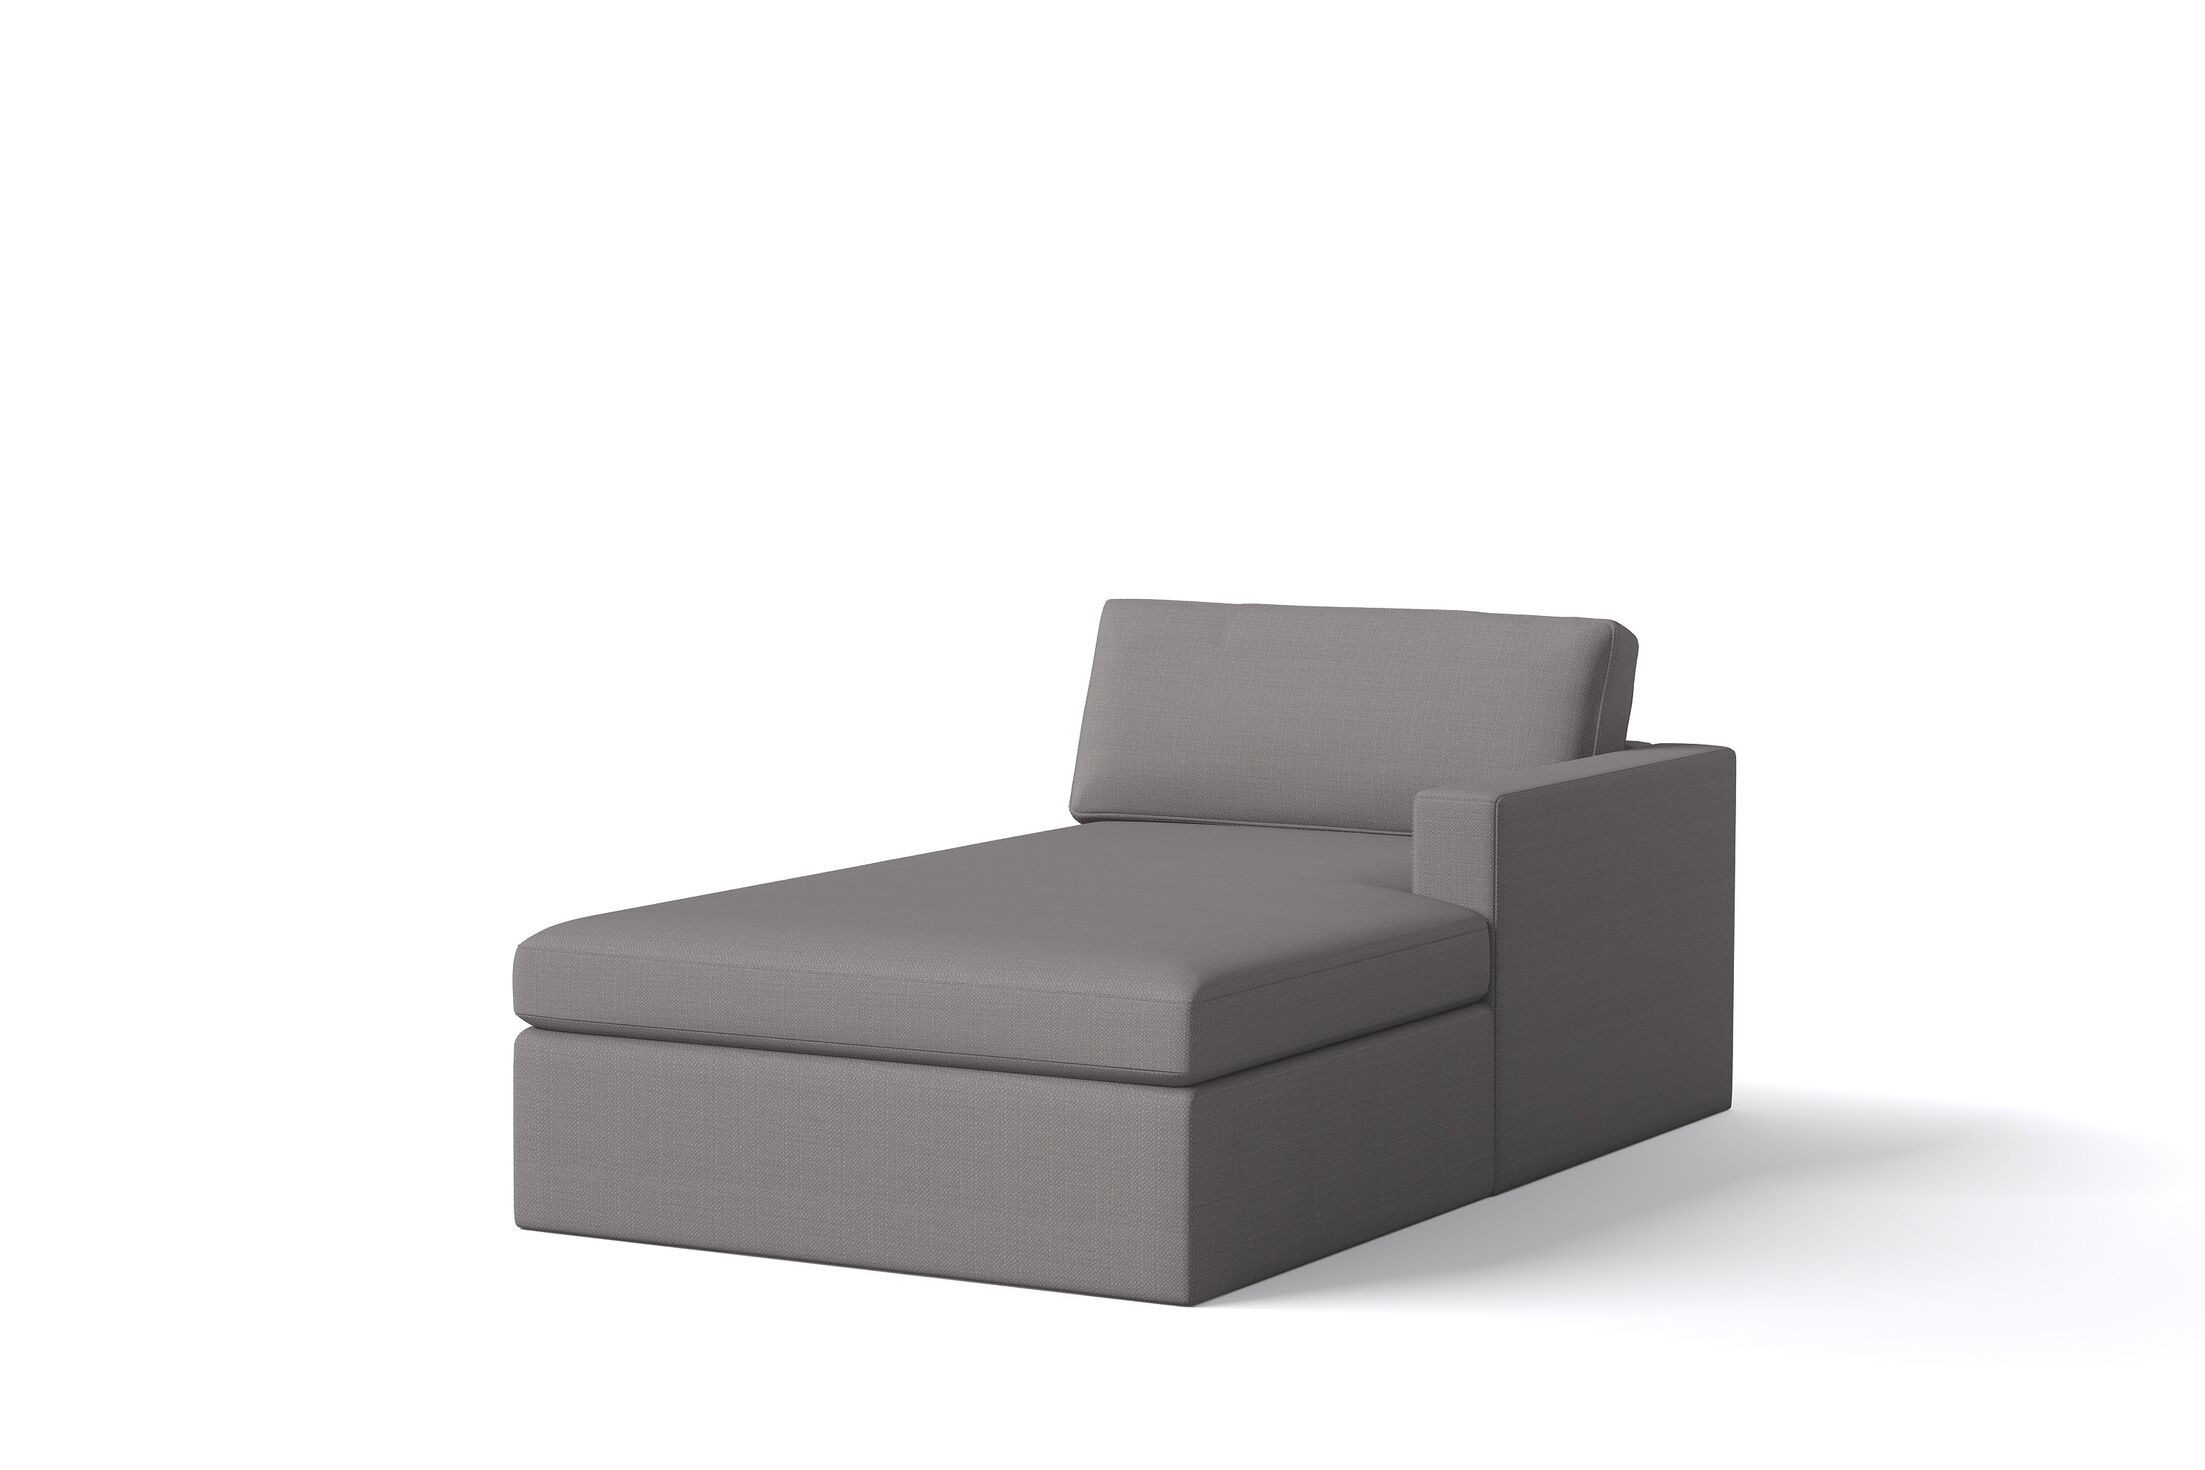 Marfa Chaise Orientation: Right Hand Facing, Body Fabric: Klein Ivory